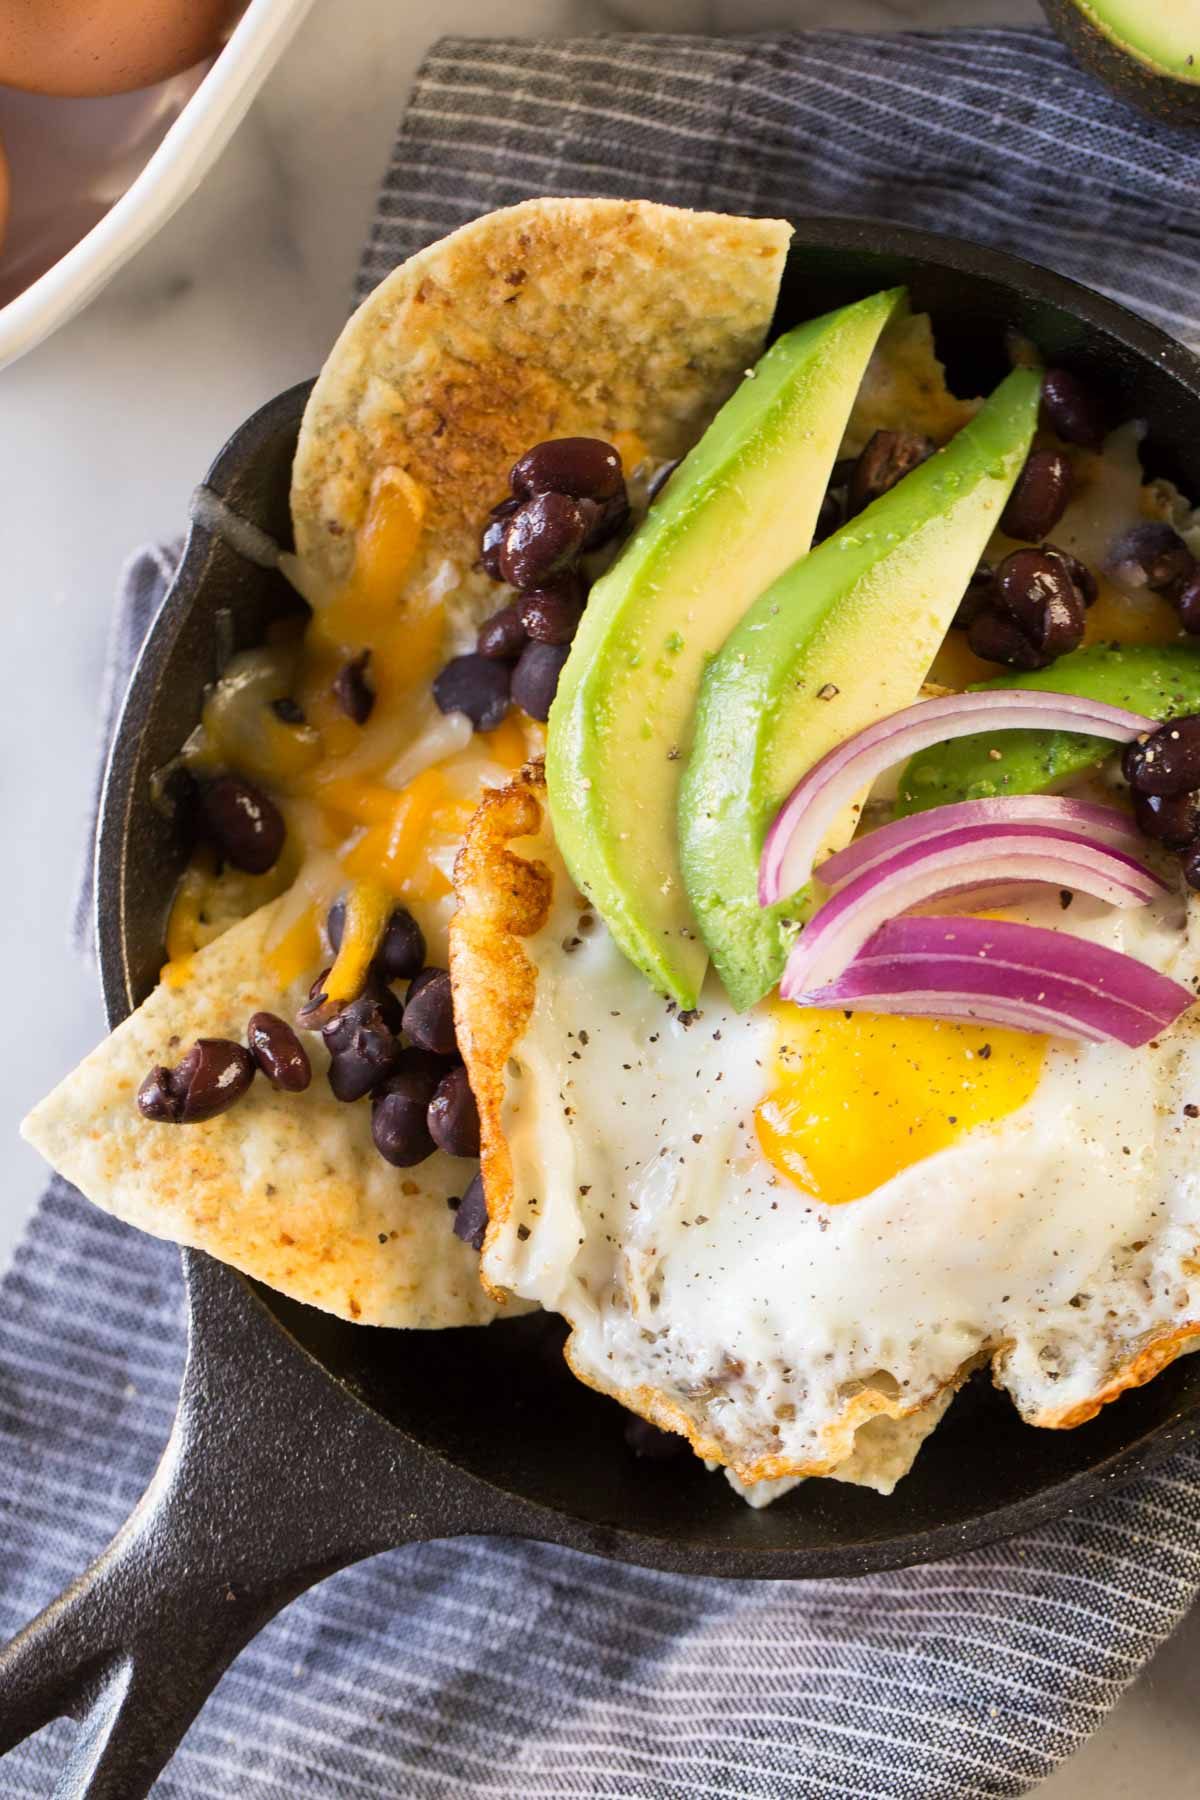 Breakfast Nacho Skillet topped with avocado slices and red onions.